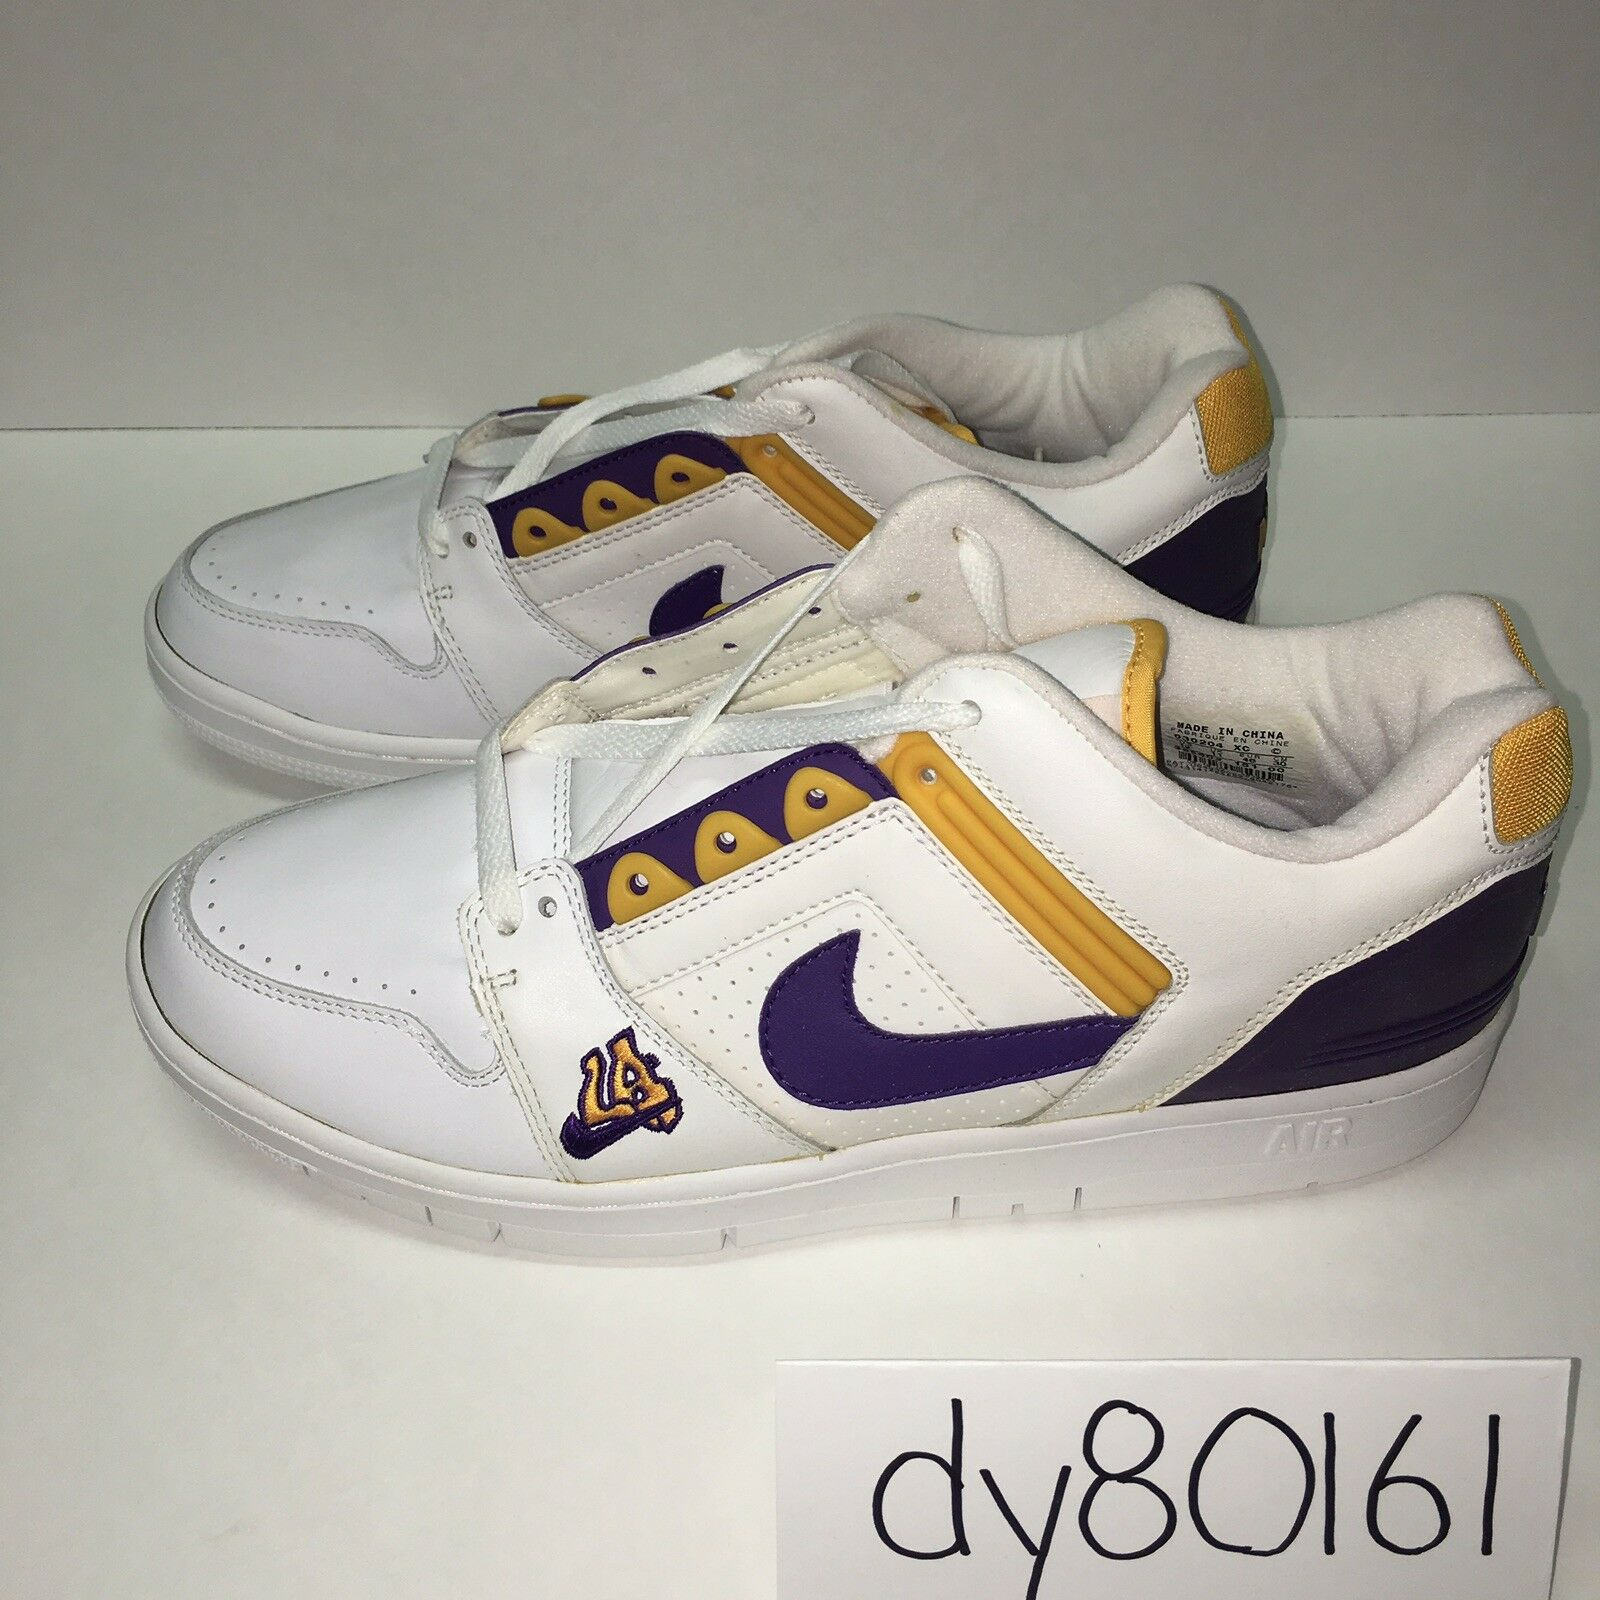 Seasonal clearance sale AIR FORCE 2 LOW Price reduction Lakers LA AF2 Men's Comfortable